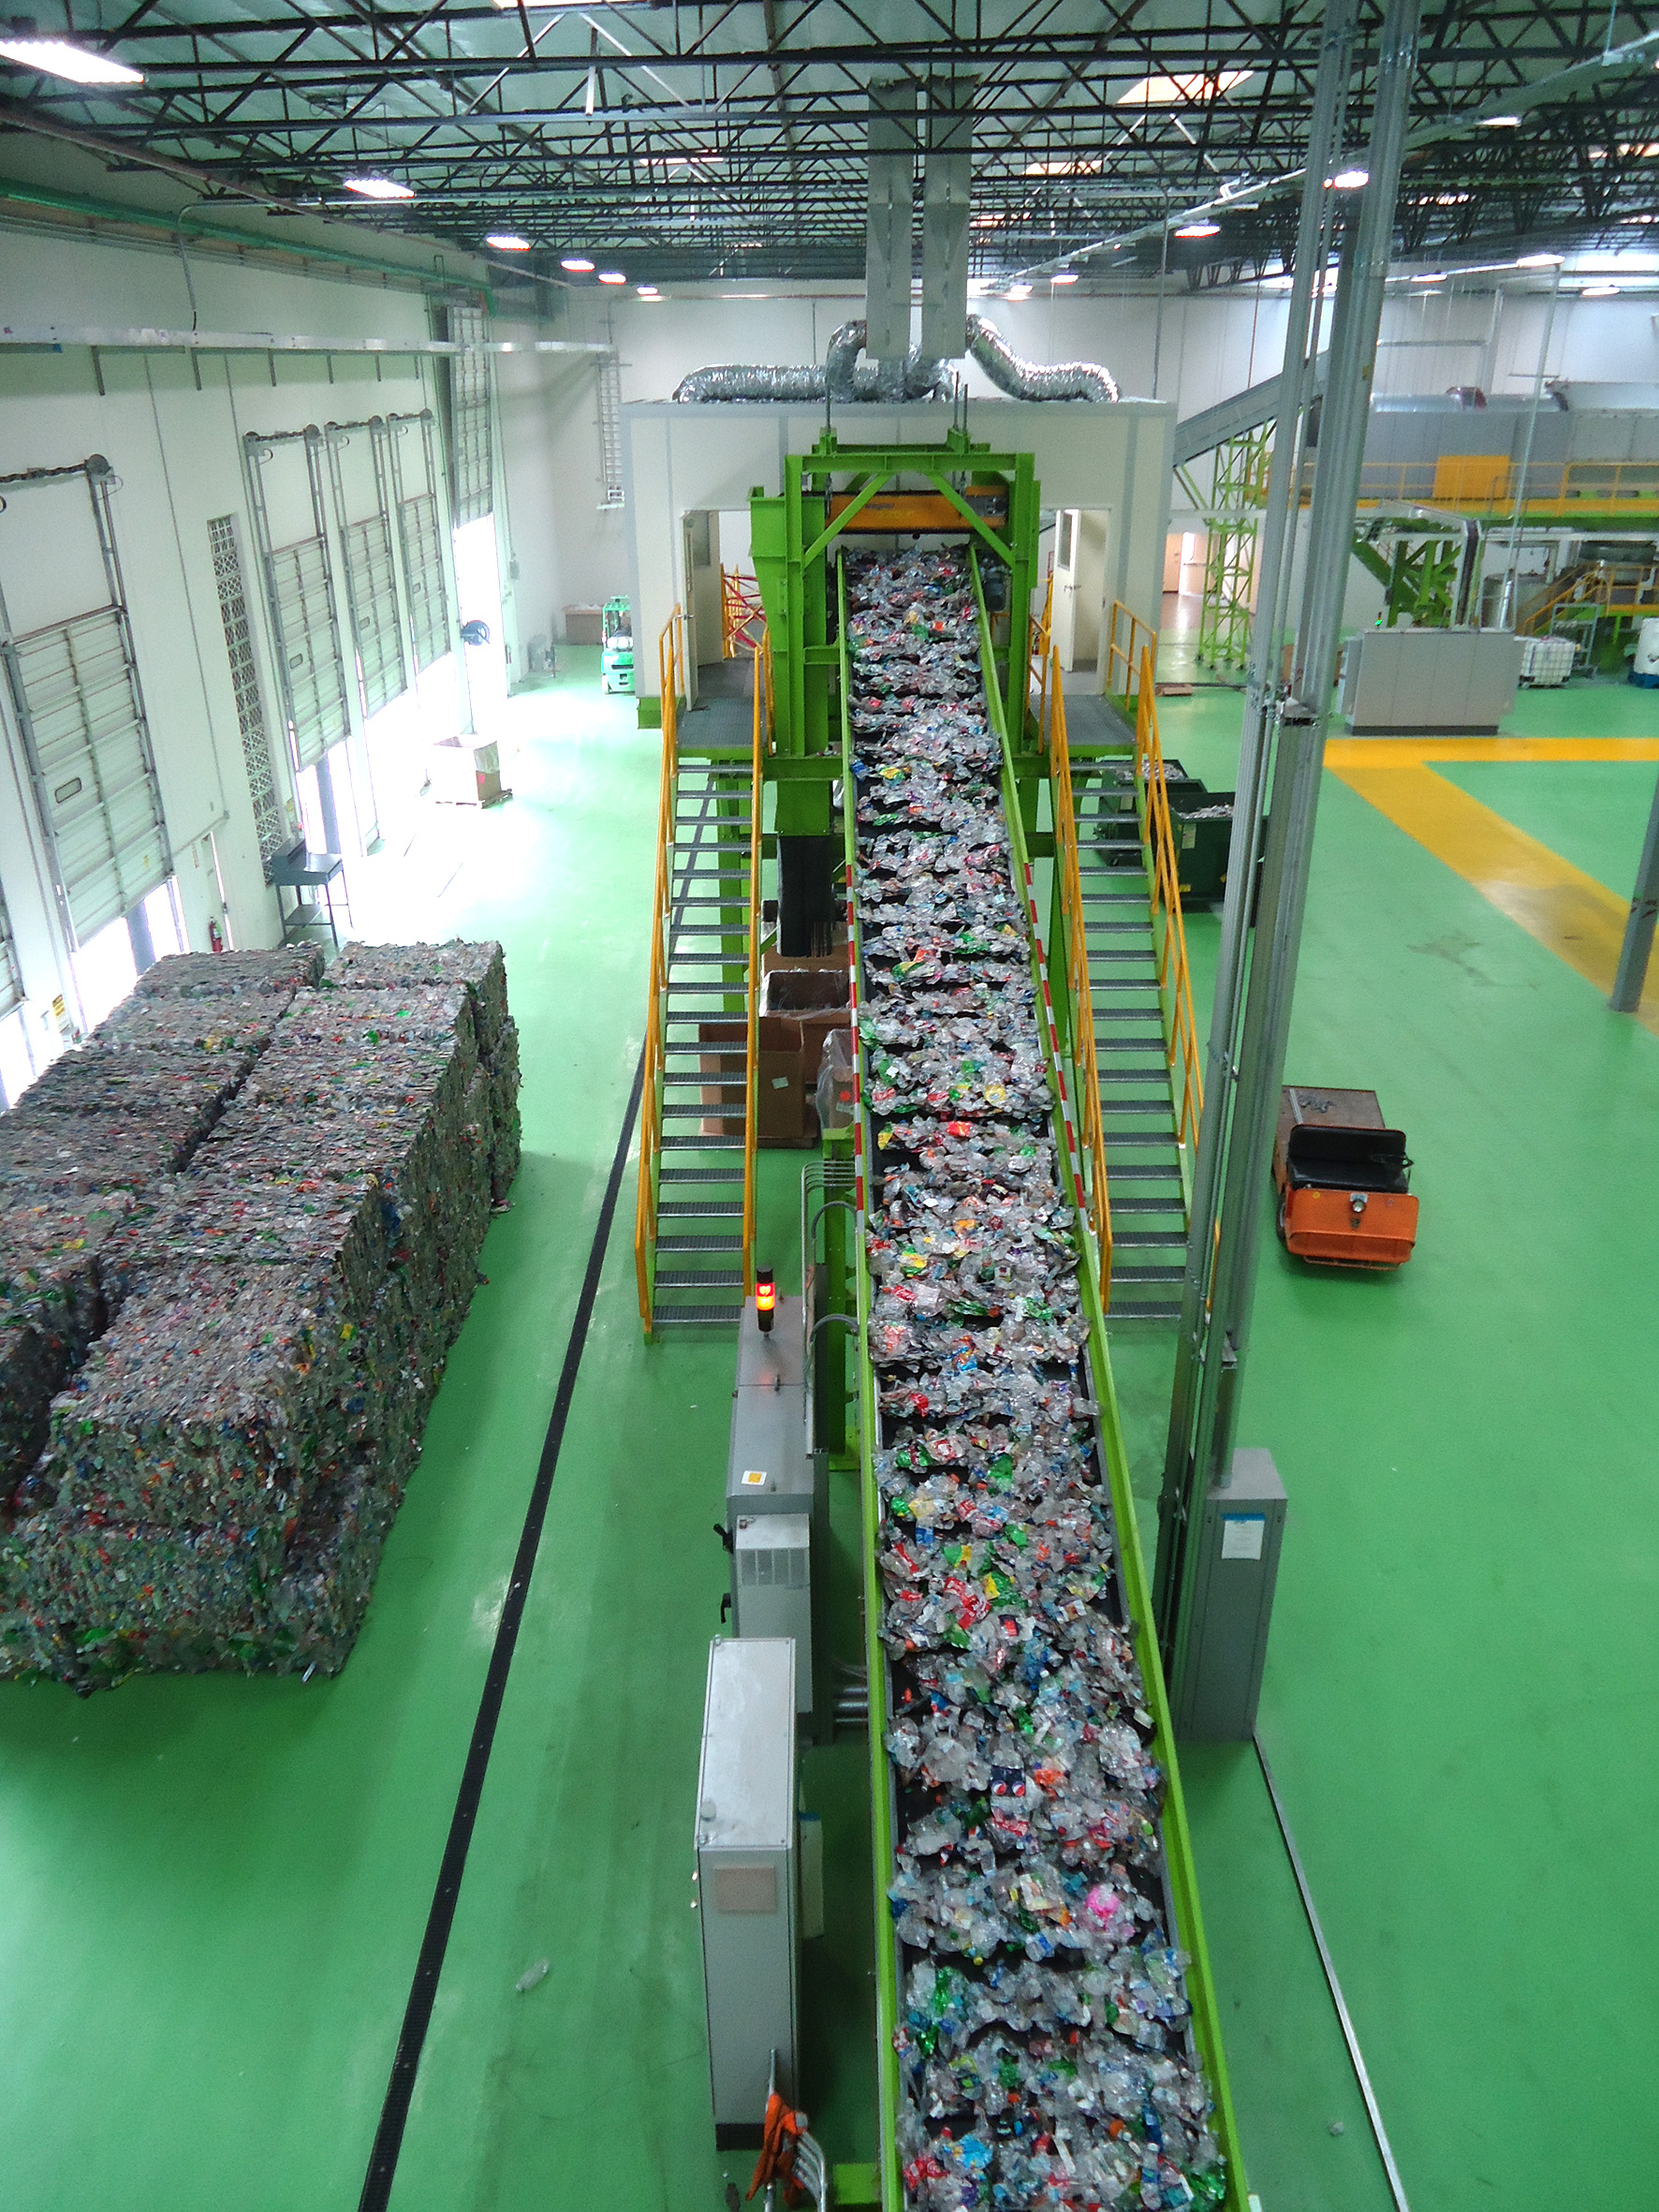 chain conveyor Sorting plant for plastic bottles